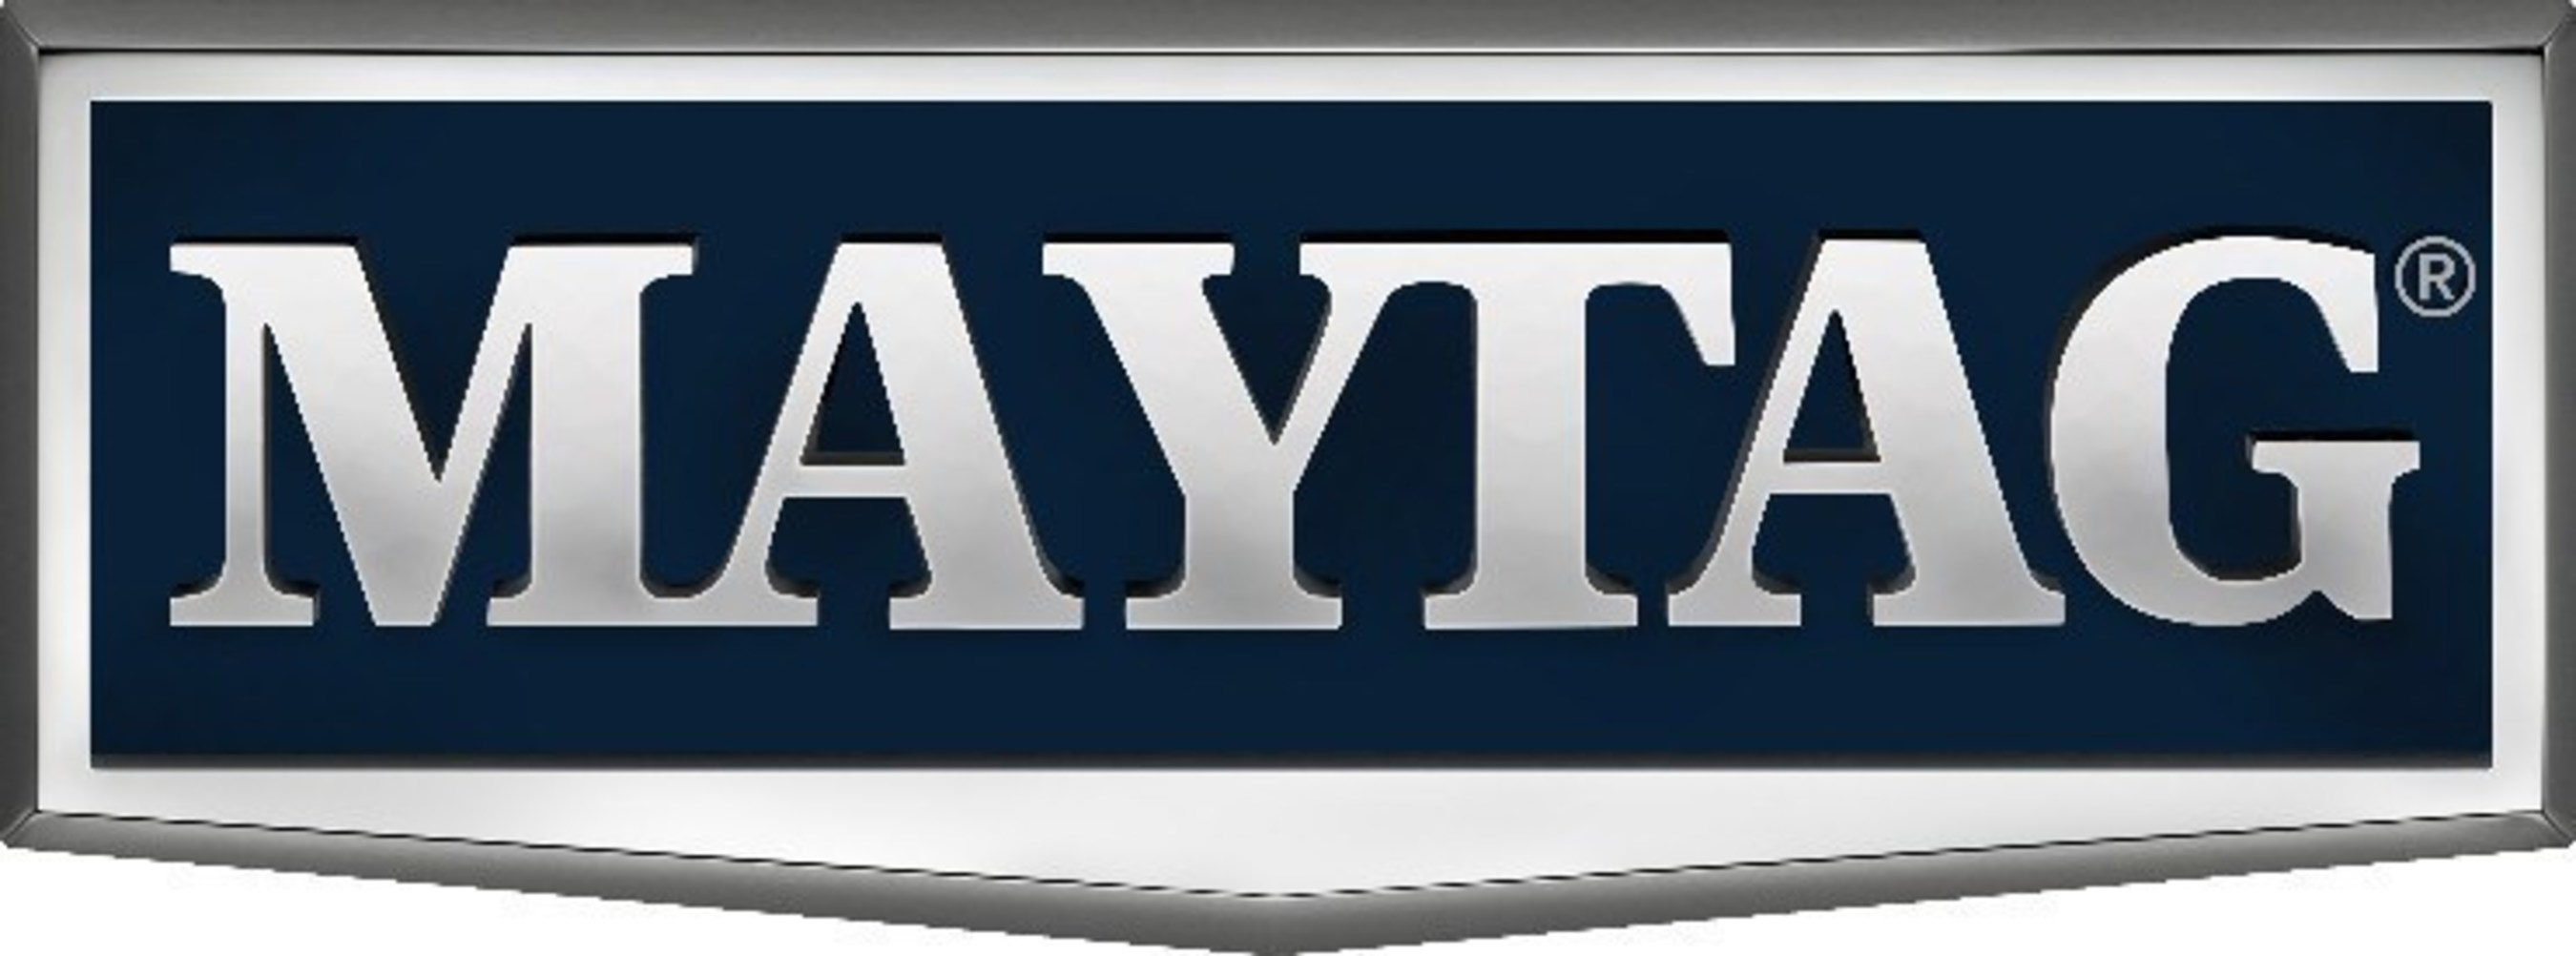 Maytag Honors Commitment to Local Boys & Girls Clubs, and Donates $100,000 to Clubs in Arlington, Atlanta, Chicago and Kansas City